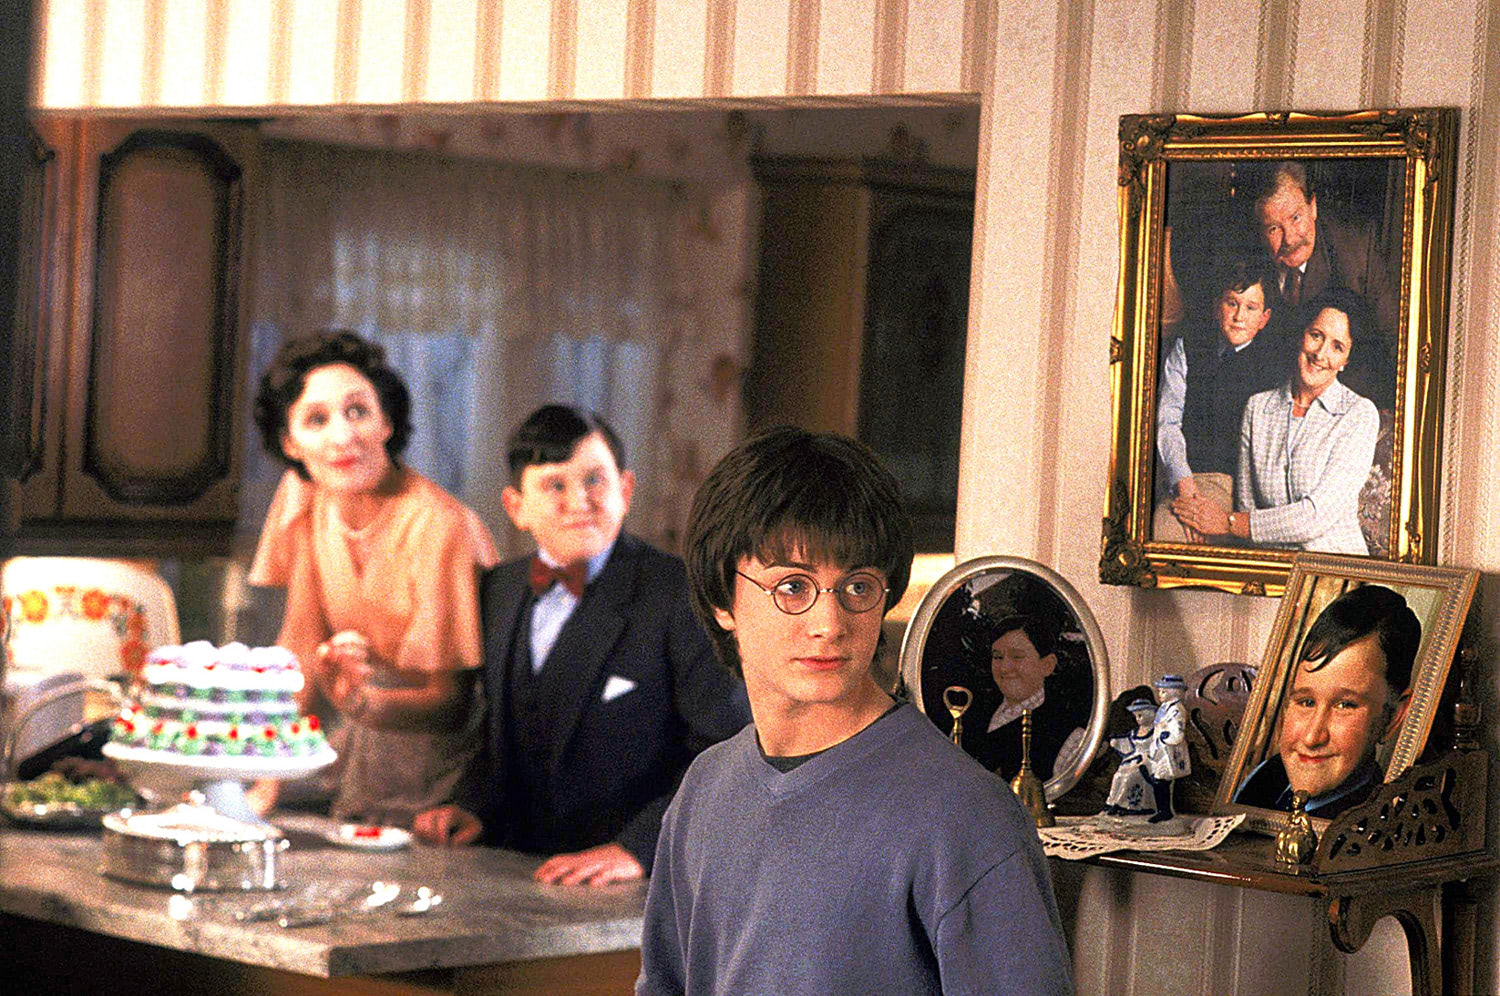 Harry at the Dursleys